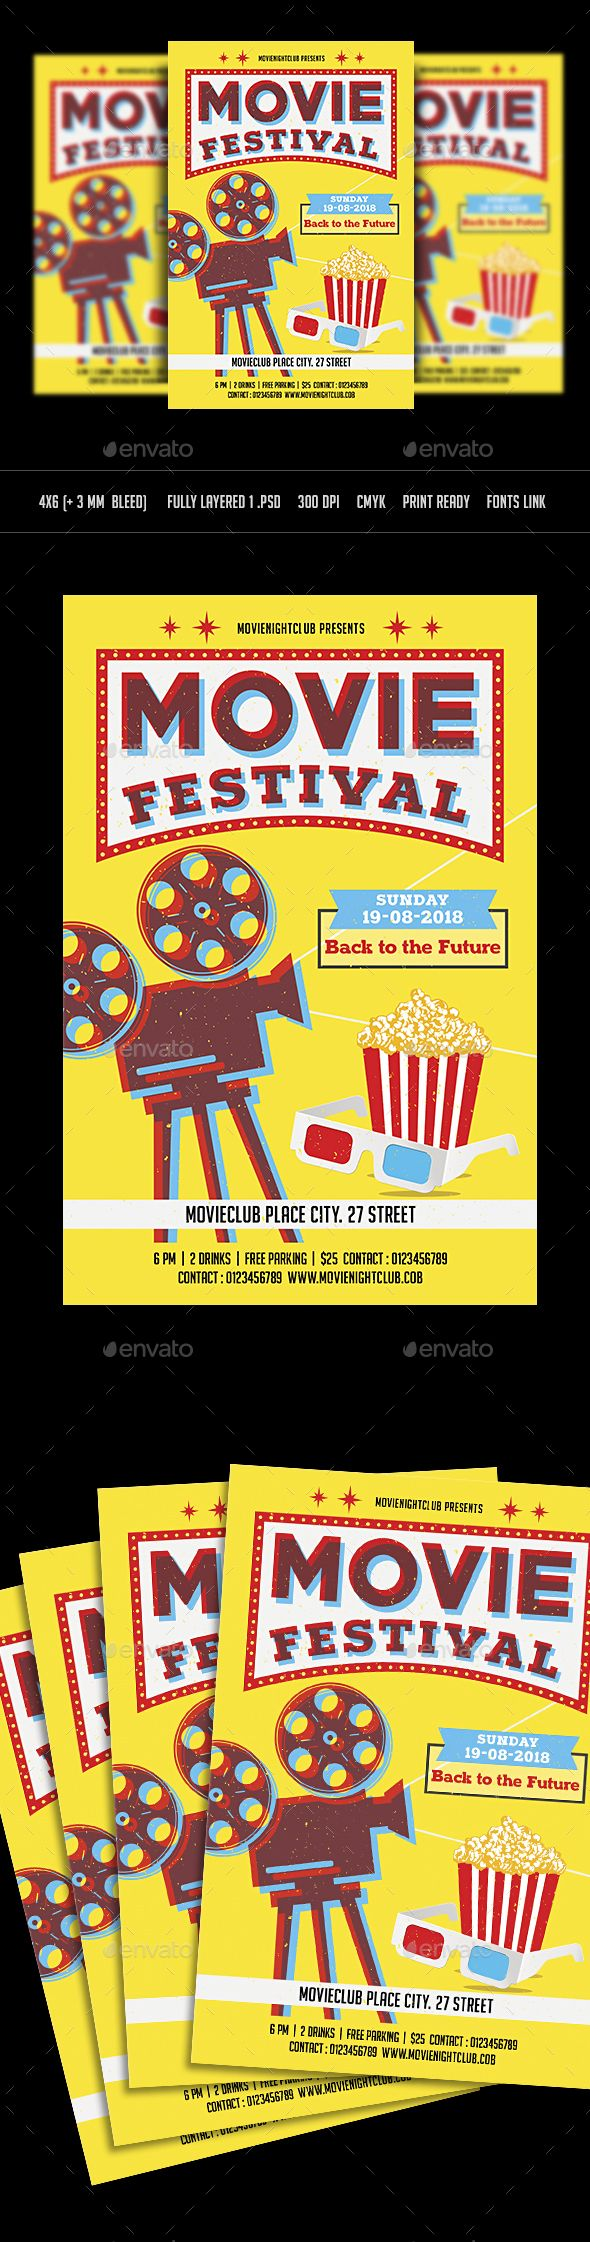 movie night flyer template psd flyer templates pinterest flyer